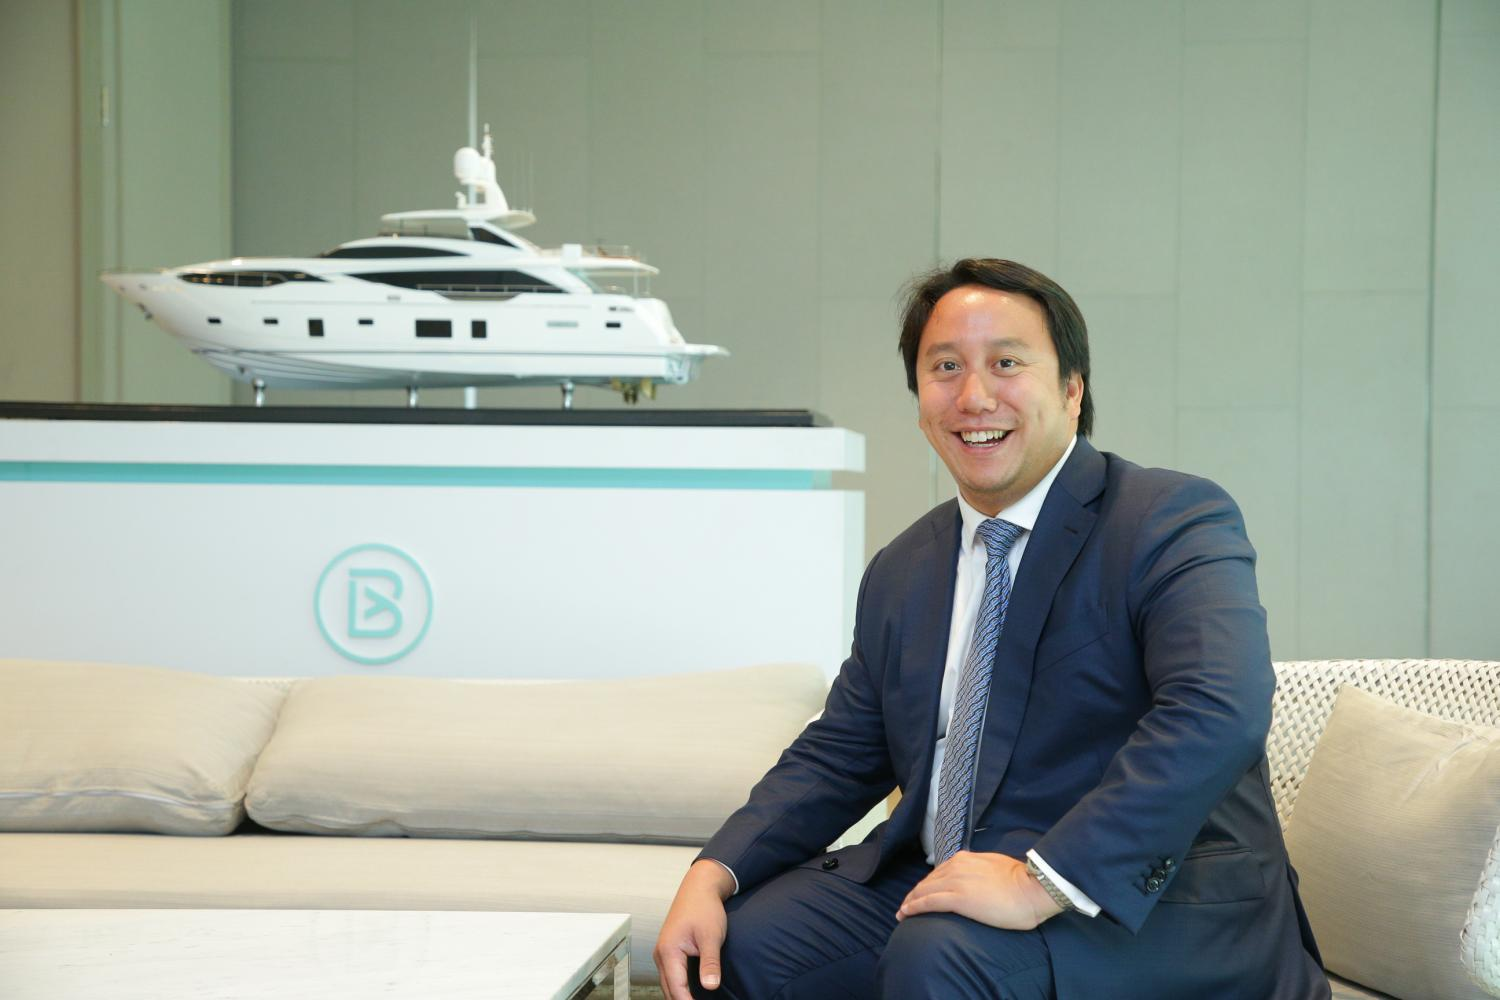 BLY sets sail with UK's Burgess